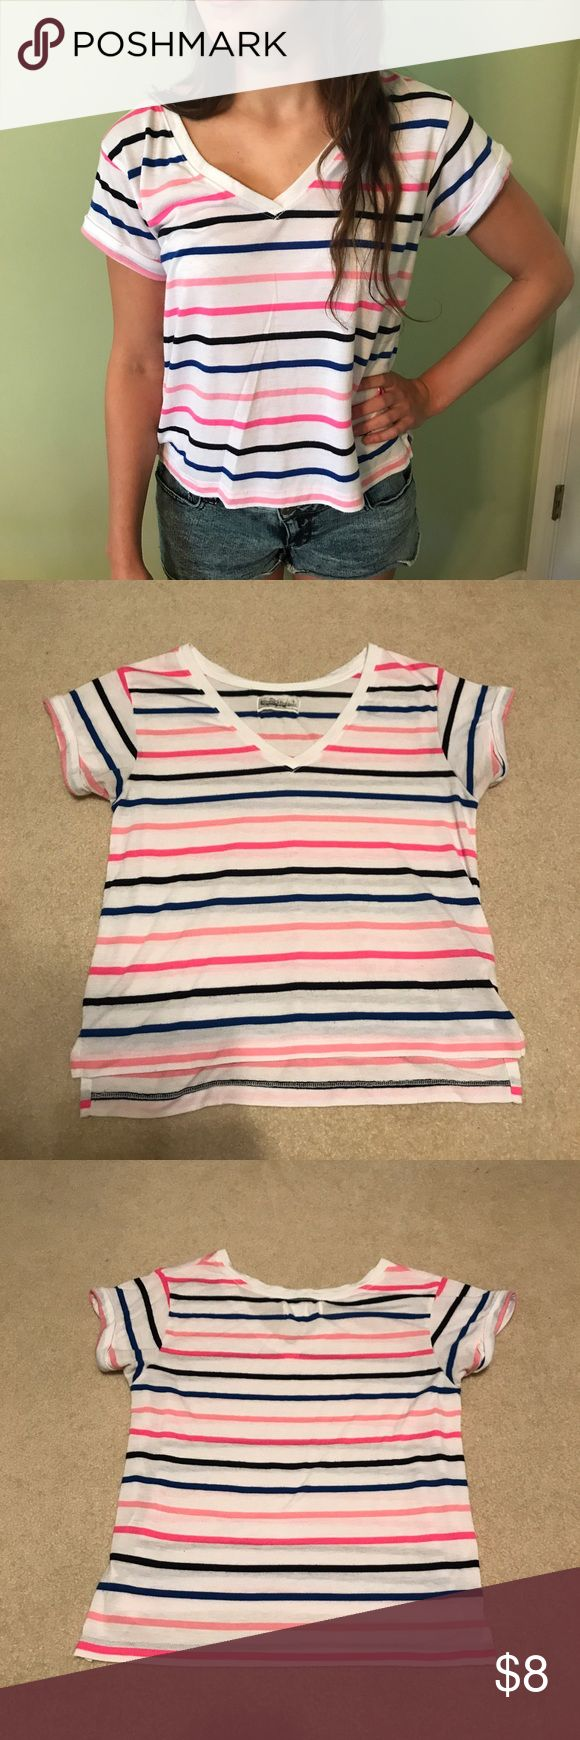 Abercrombie and Fitch Striped T-Shirt Size S Abercrombie and Fitch t-shirt with blue and pink stripes size S. Very light wear. Perfect with shorts, jeans, of leggings! Abercrombie & Fitch Tops Tees - Short Sleeve